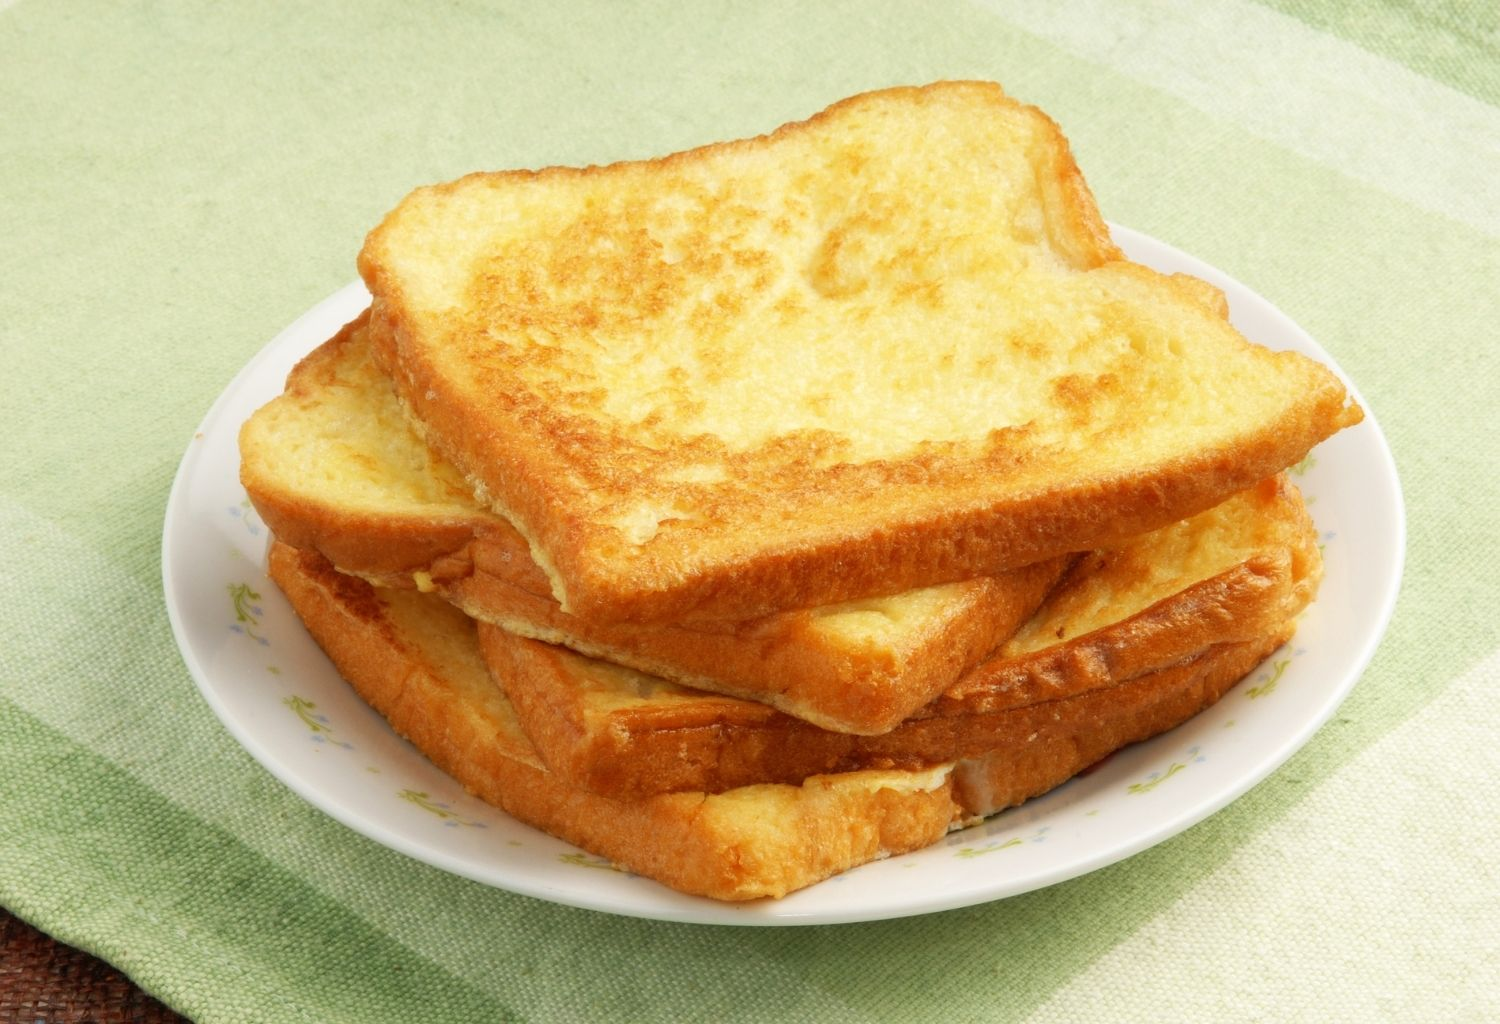 eggy bread slices on a plate